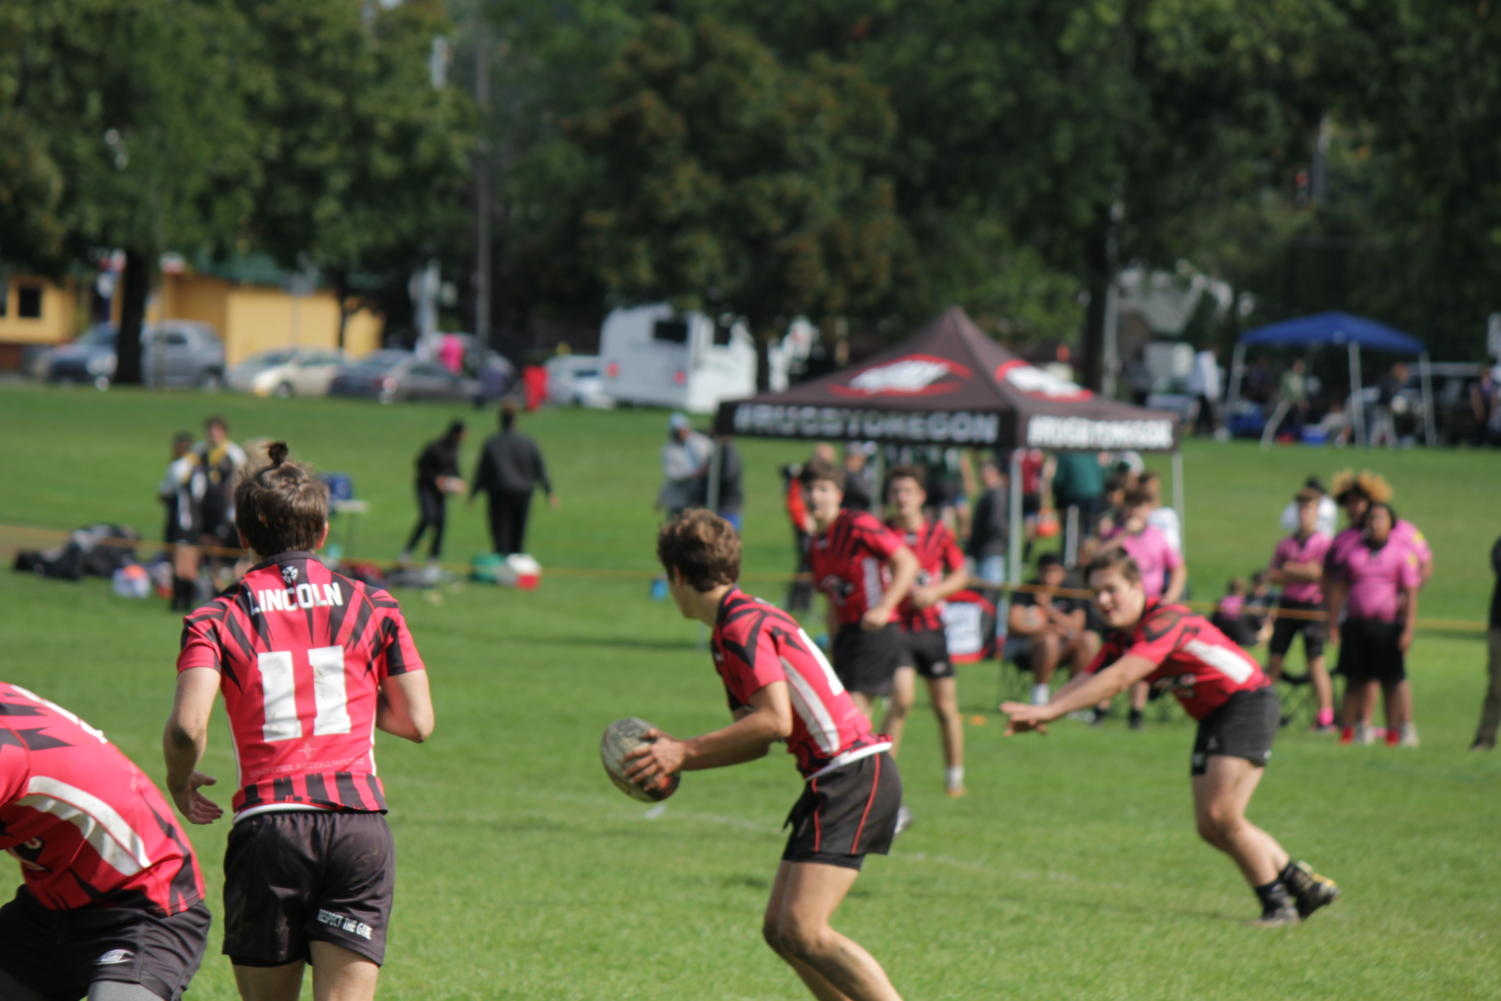 The Lincoln rugby team works their way up the field against Eastside Tsunami Pink. They won the game 33-0 on Sept. 28, 2019.